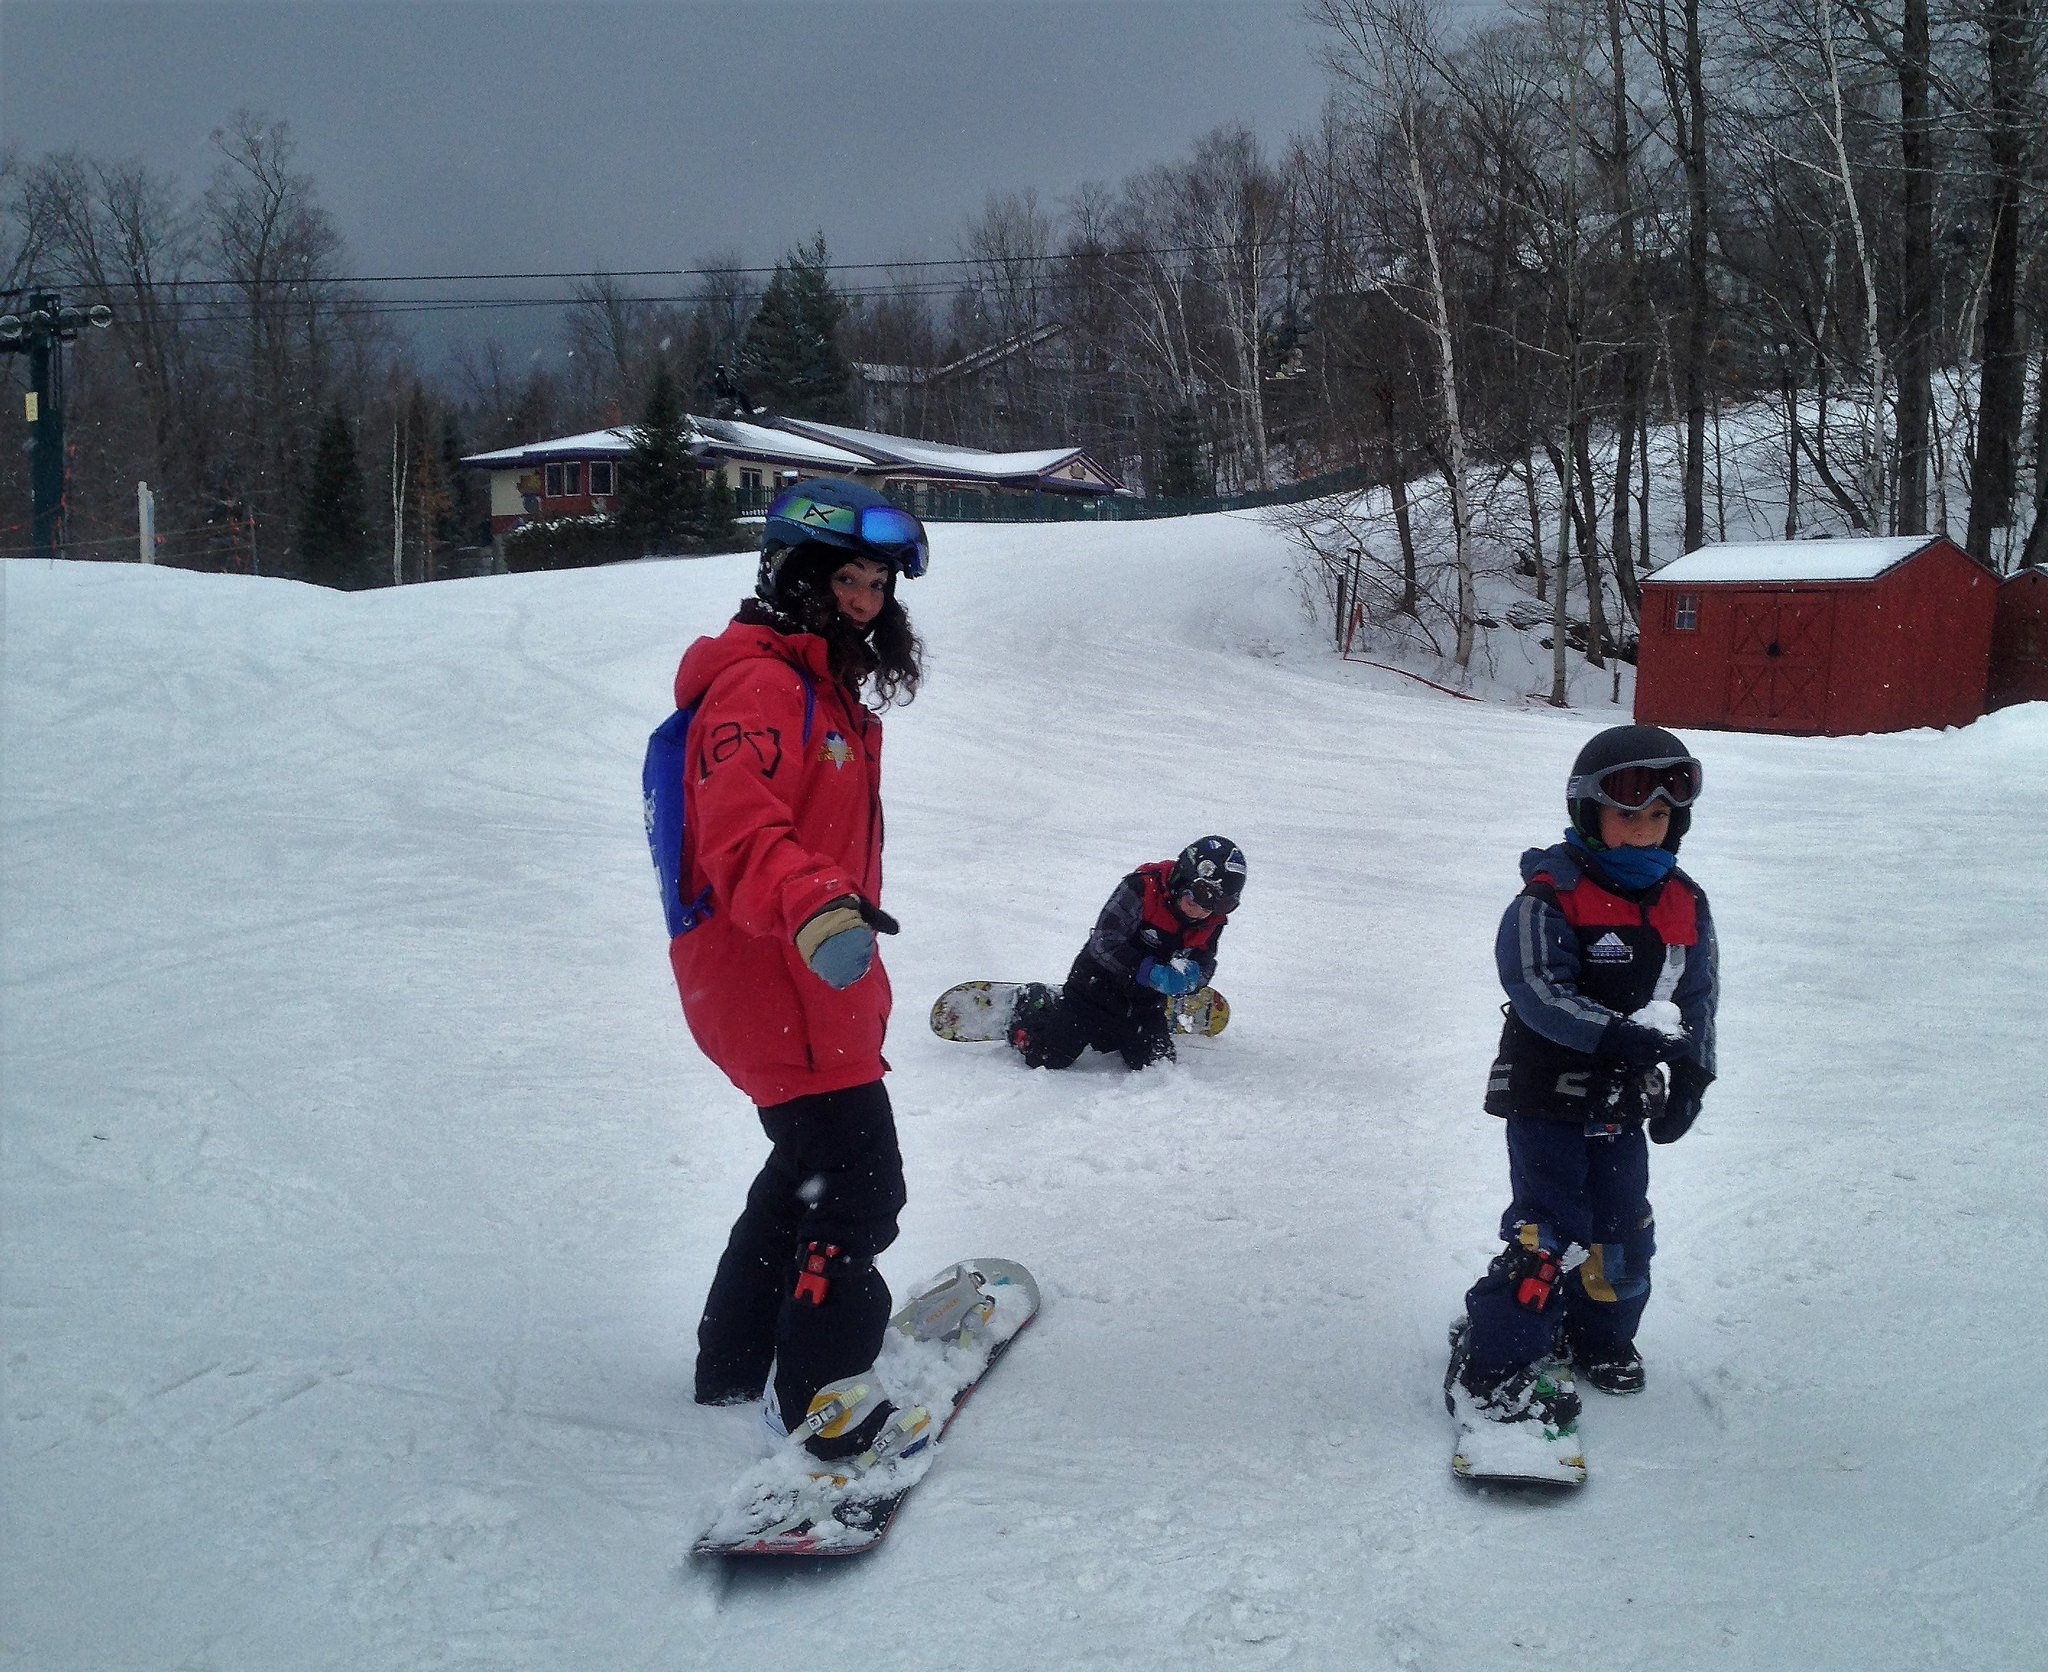 snowboarding classes for kids, vermont ski resorts